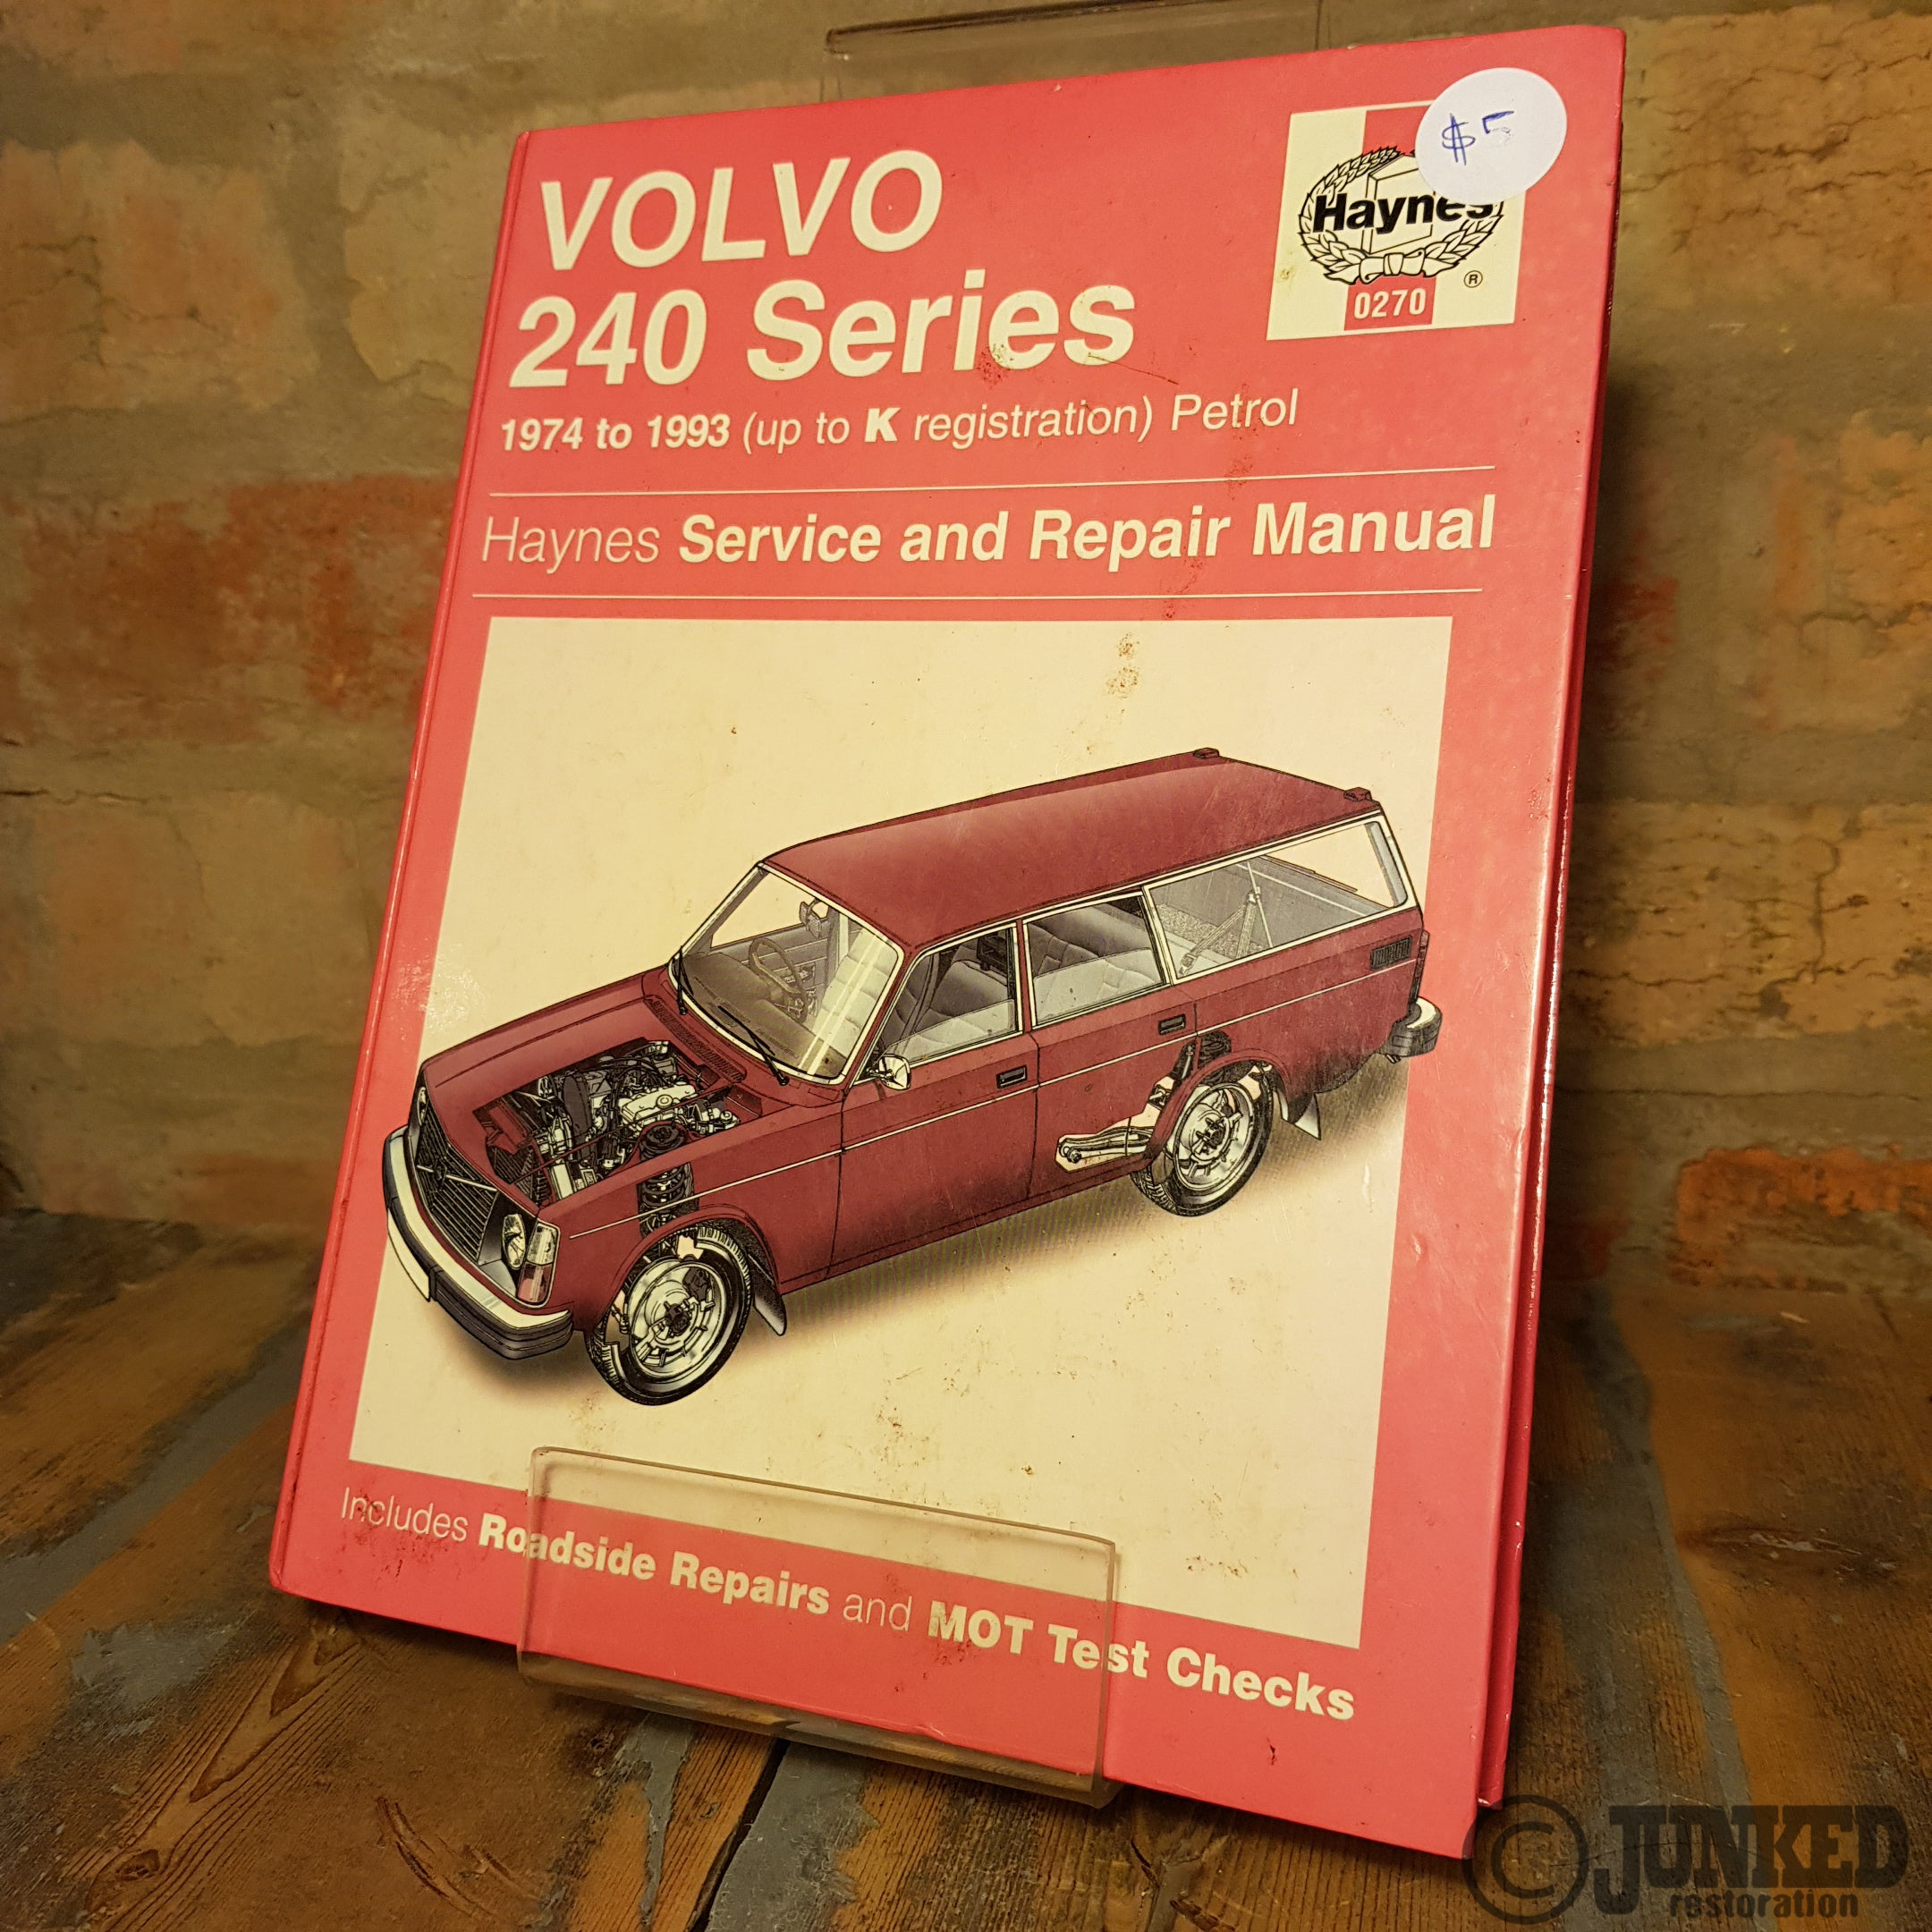 Car Service Manual - Volvo 240 series – JUNKED